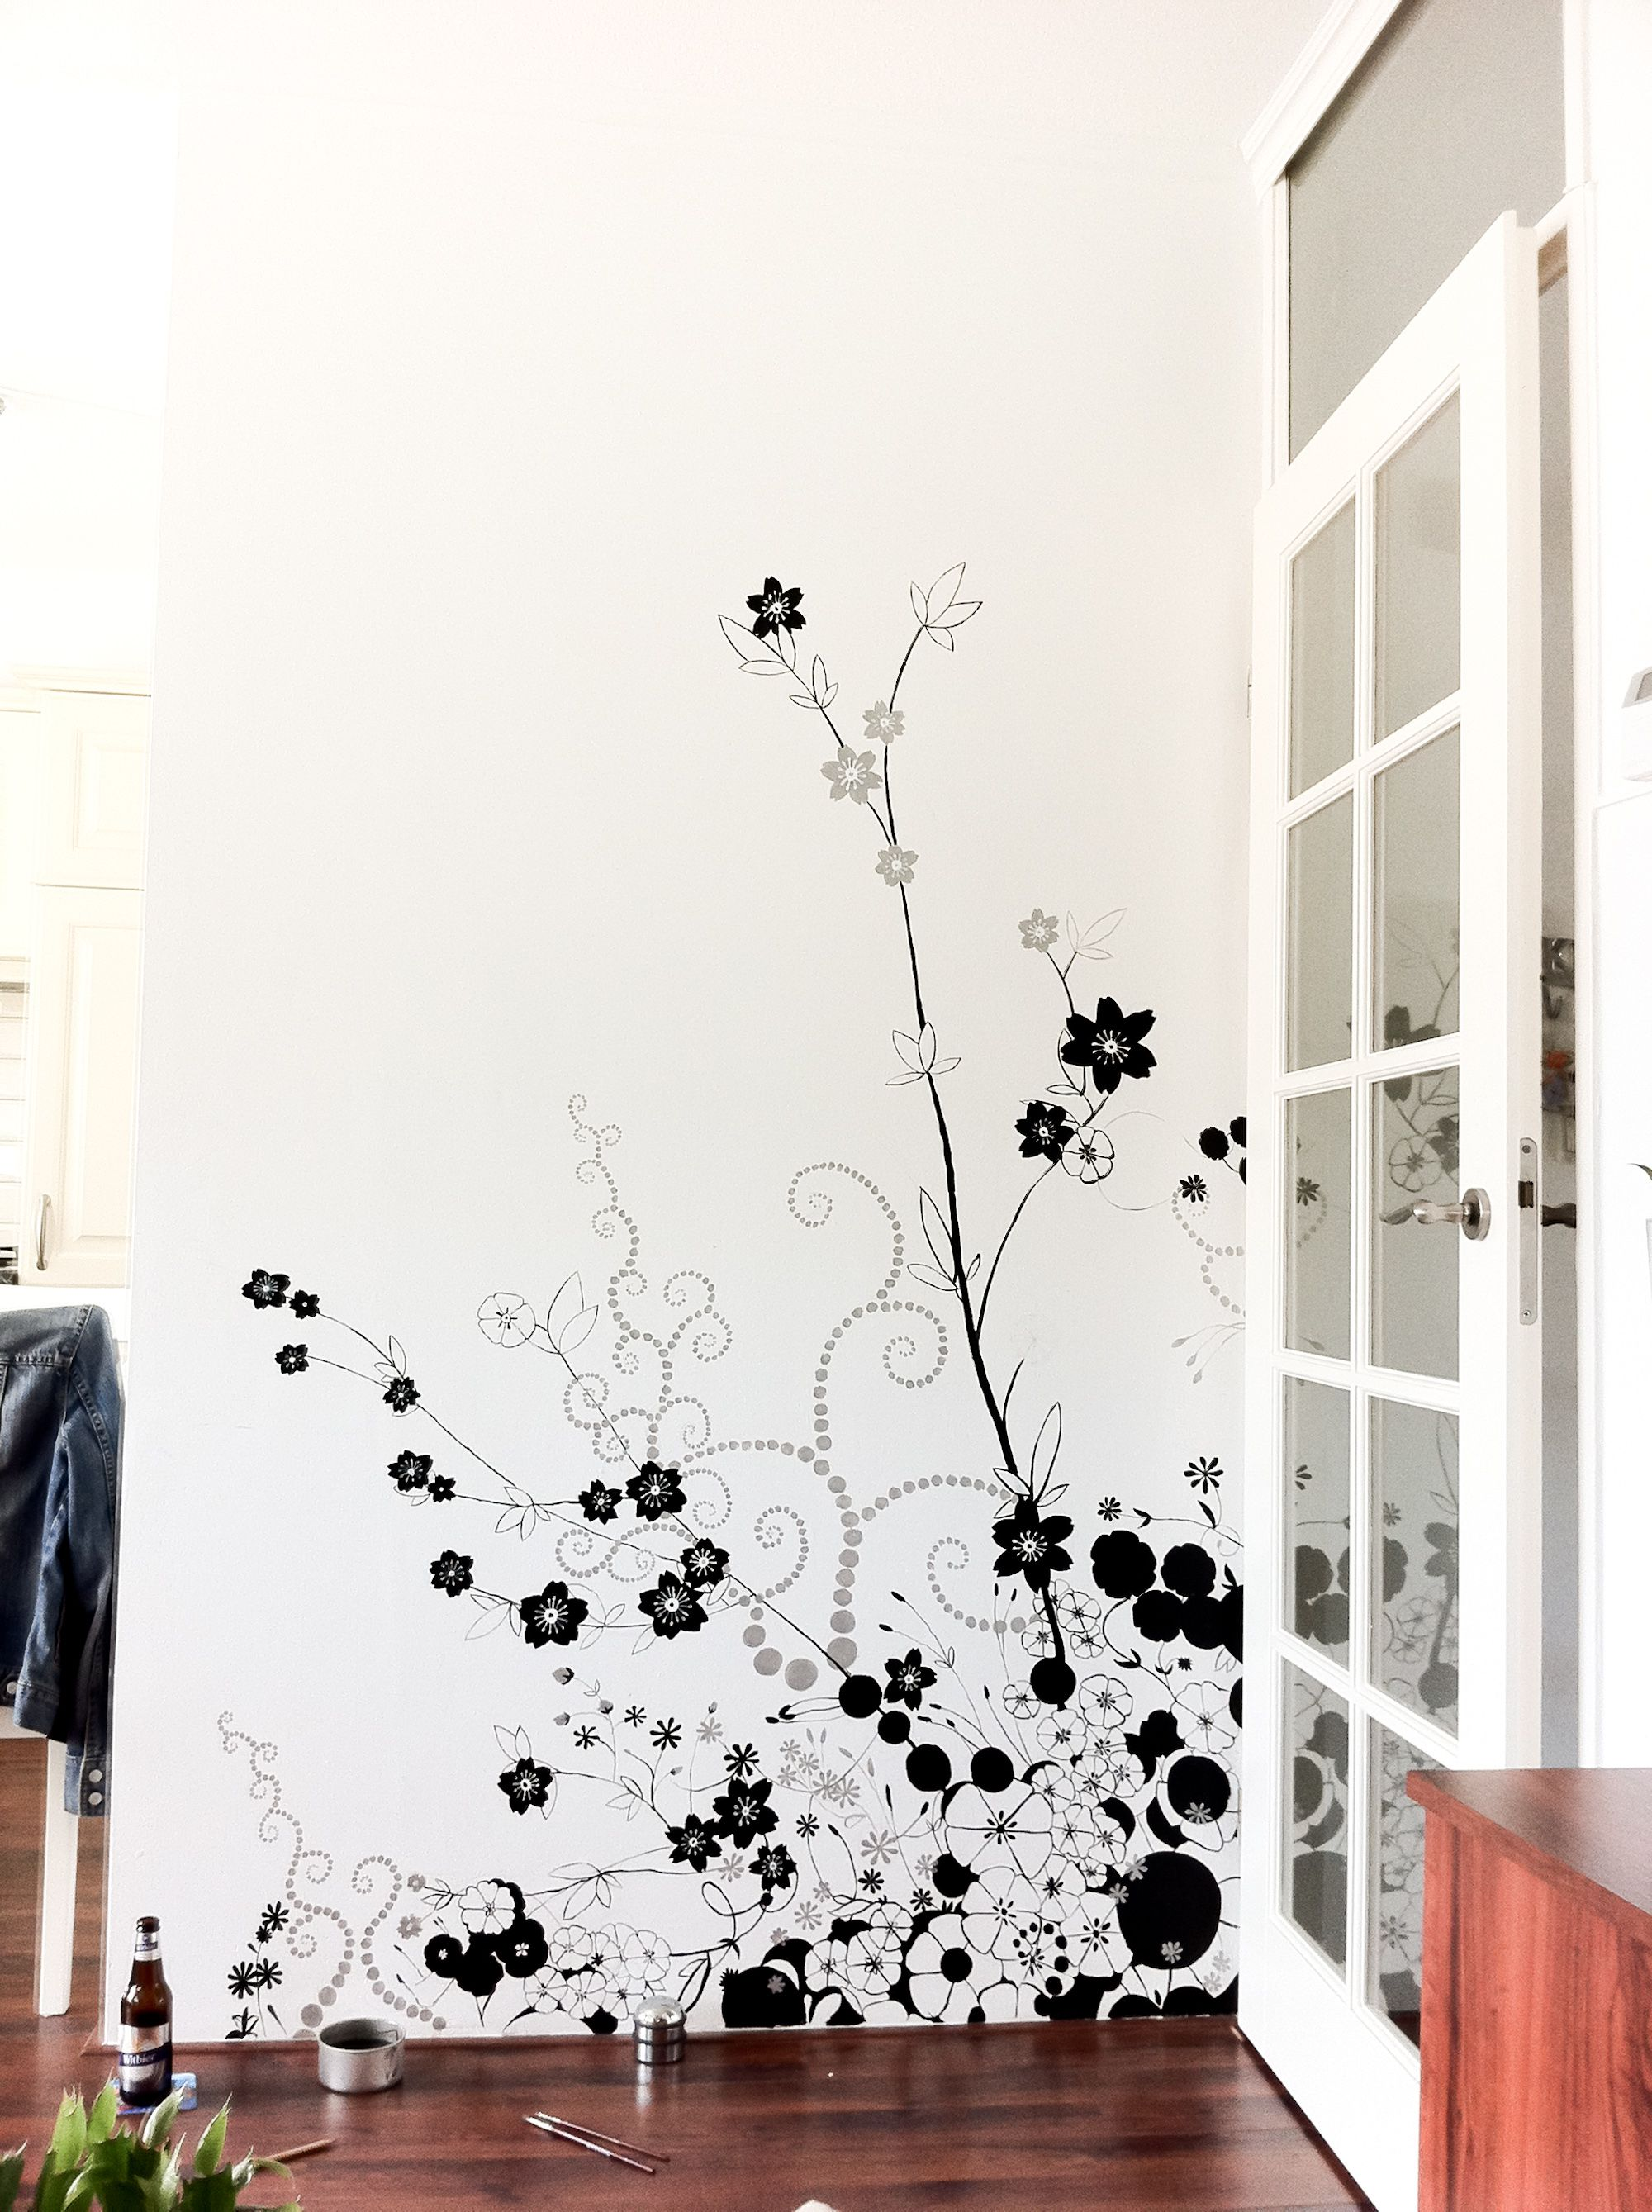 Black Wall Paint wall painting patterns designs | wall painting idea | pinterest